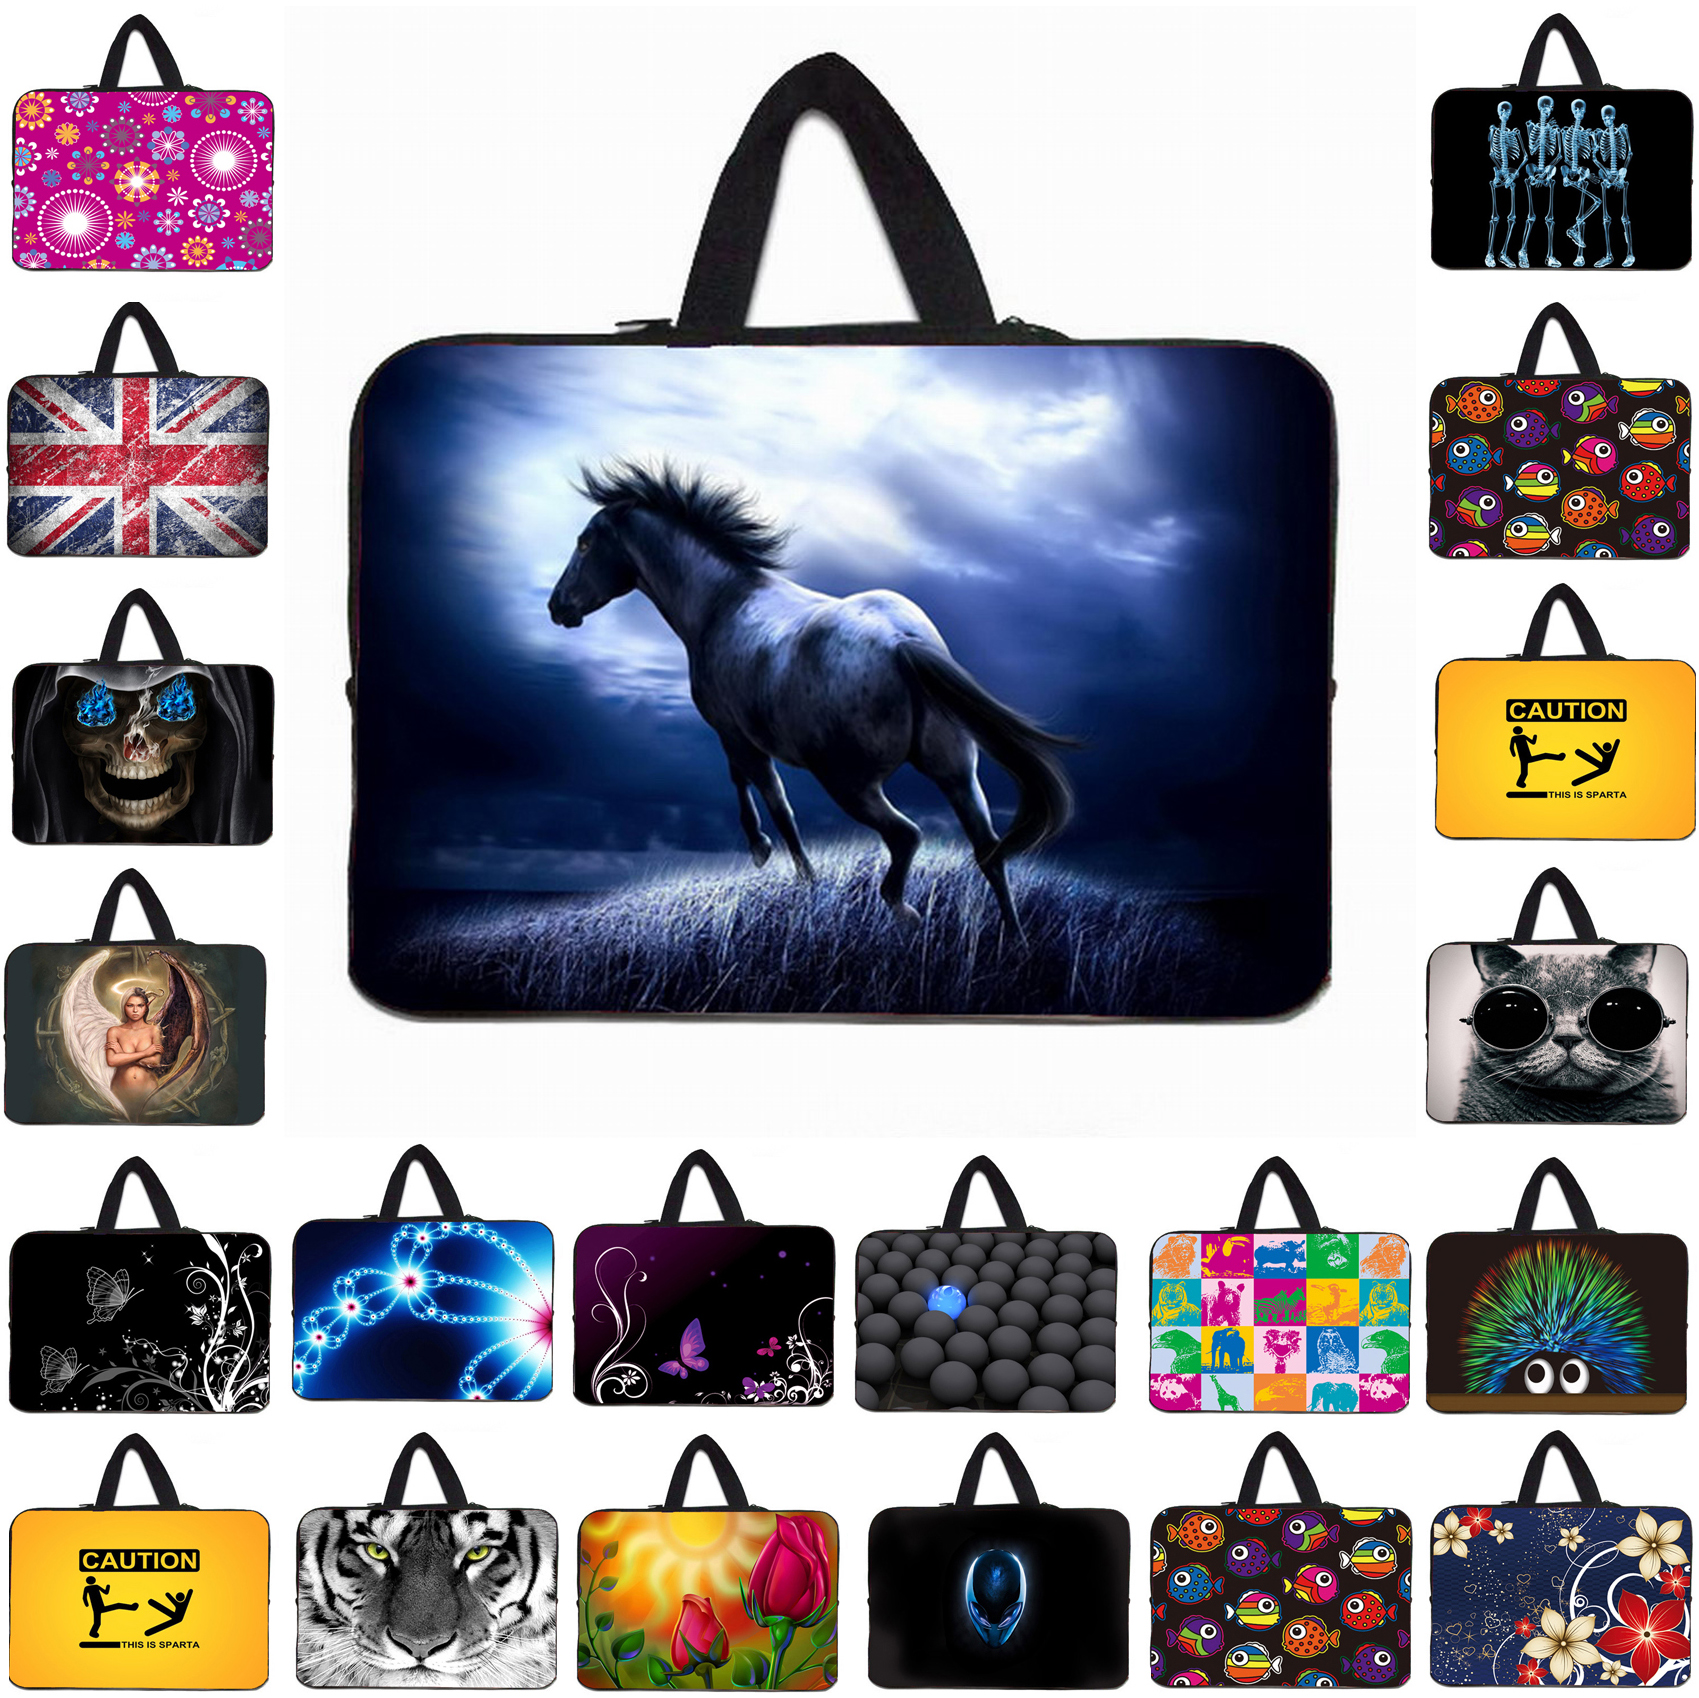 """14"""" inch Notebook Zipper Liner Pouch Soft Neoprene Protective Bag For Dell ASUS Acer Lenovo 14.1 14.4 inch Laptops Mini Computer(China (Mainland))"""